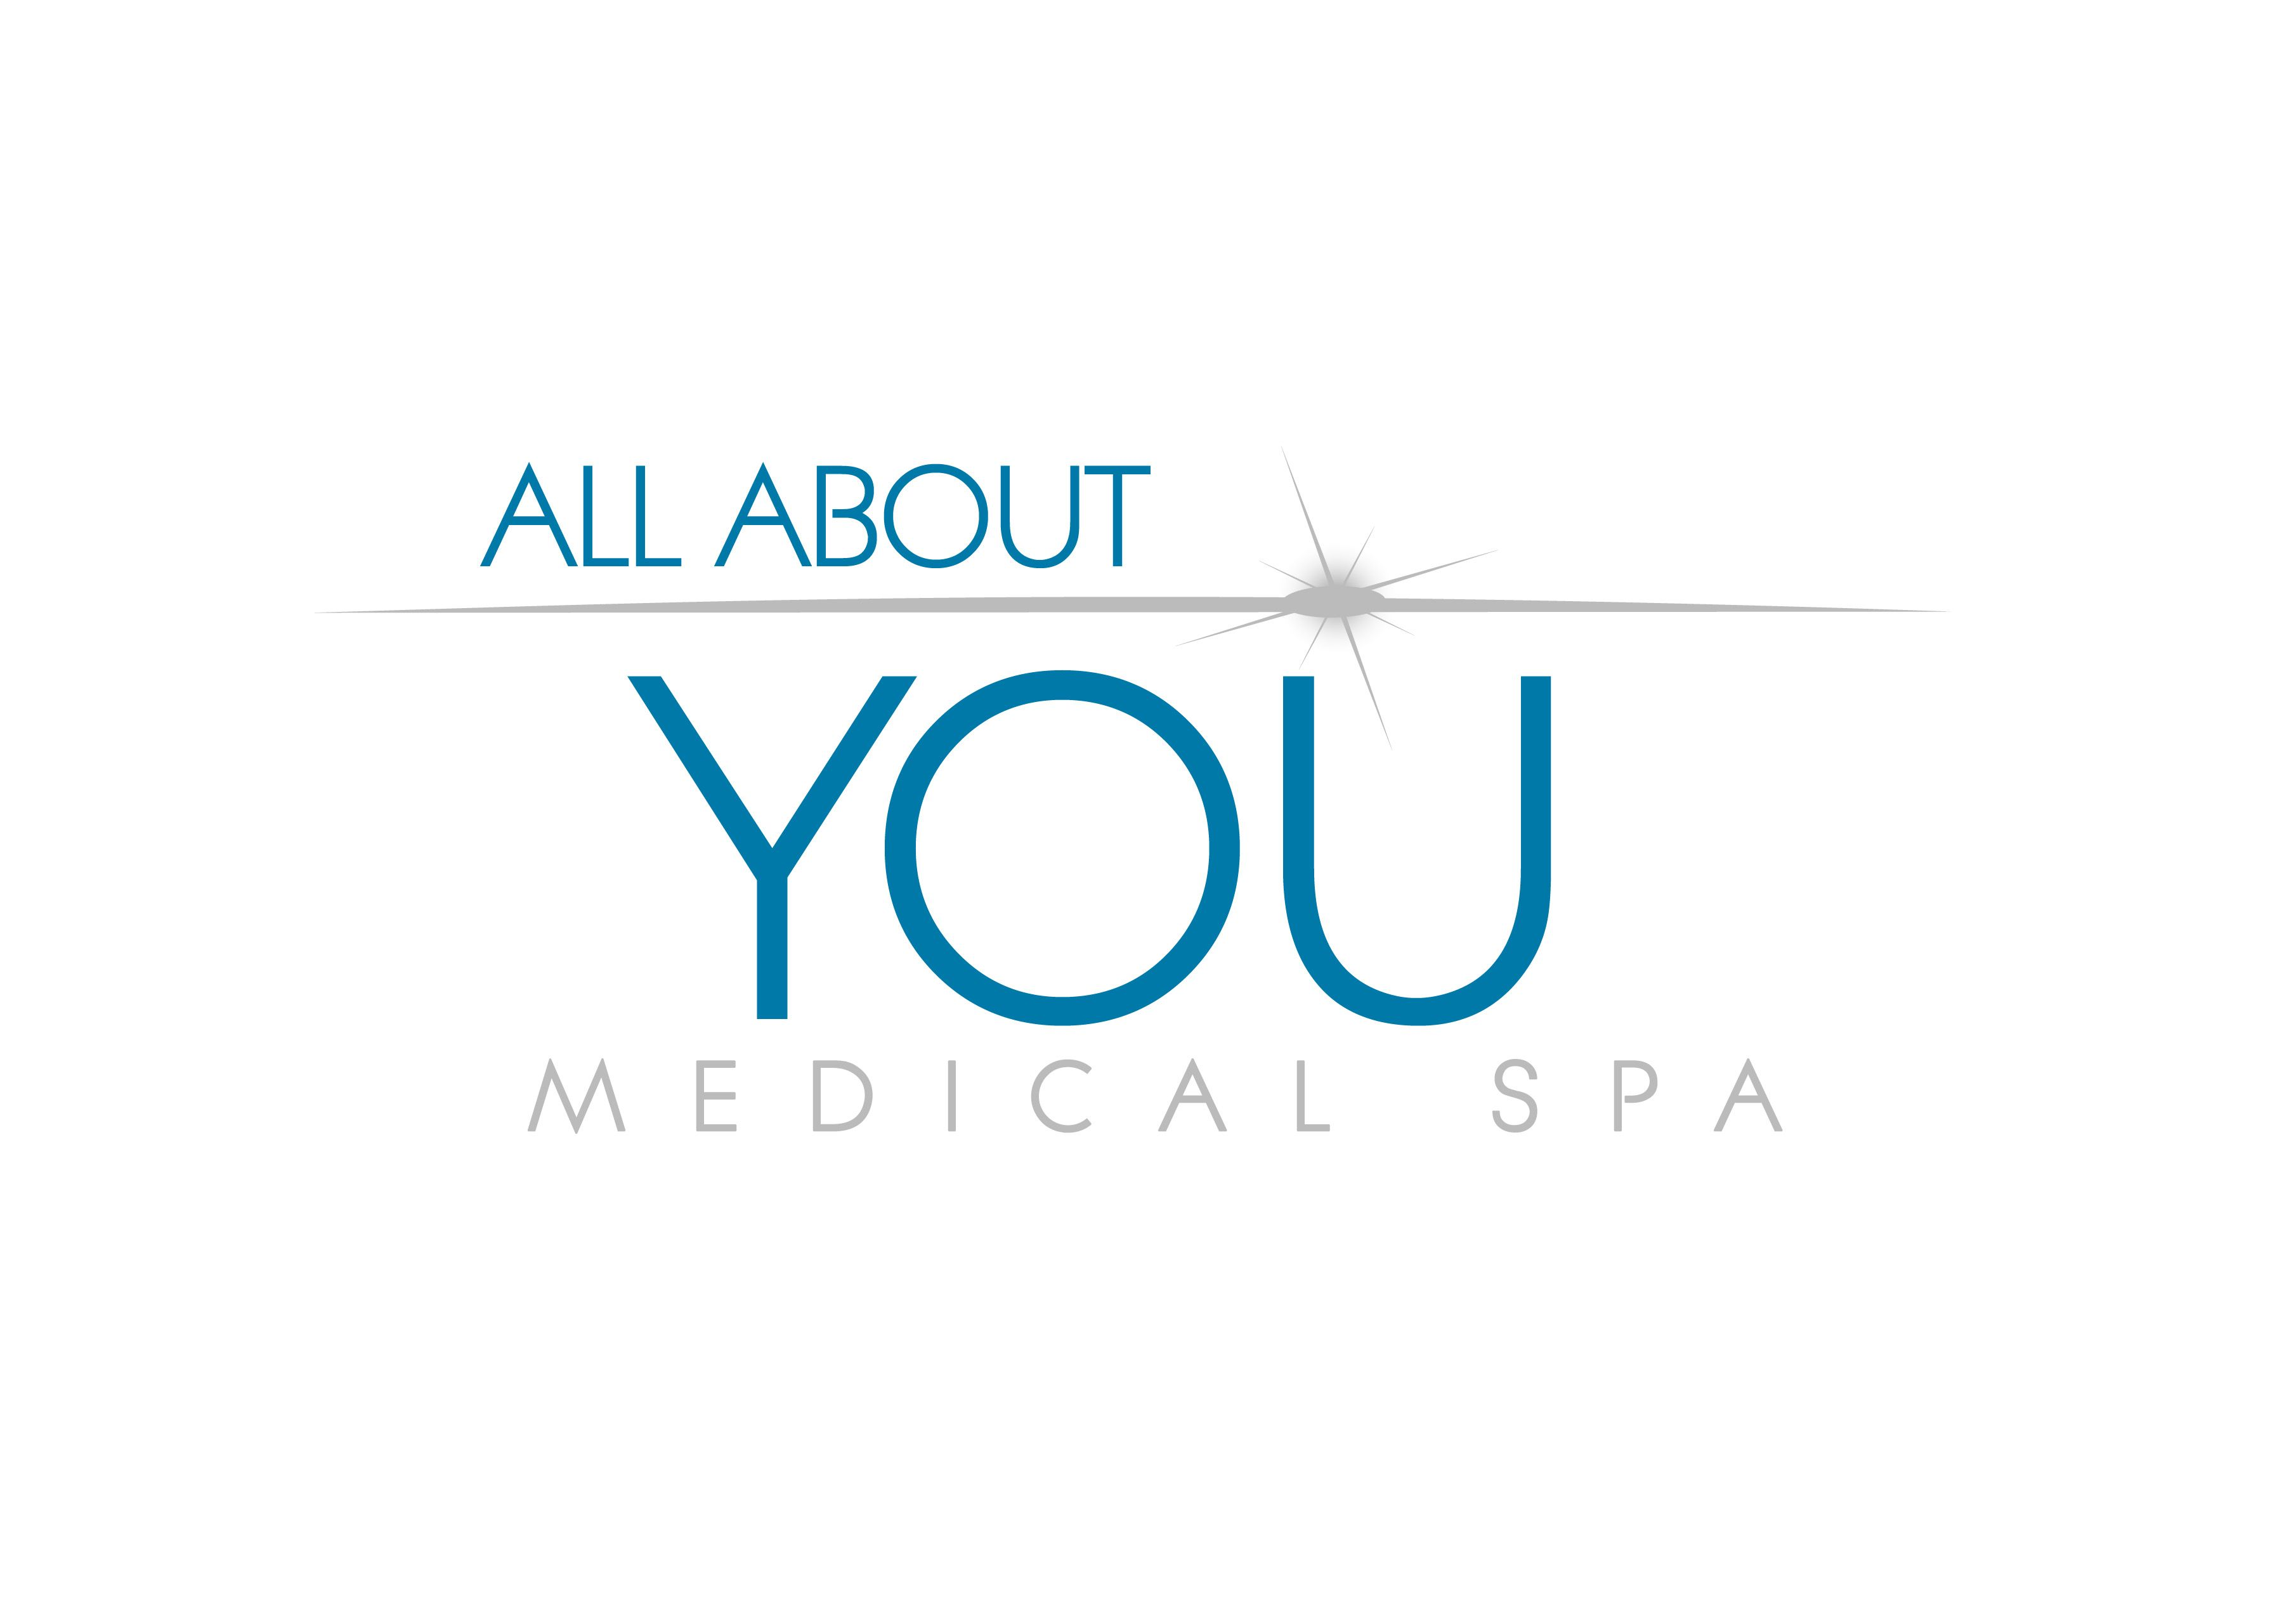 Boutique medical spa located in the heart of Fairfield, CT